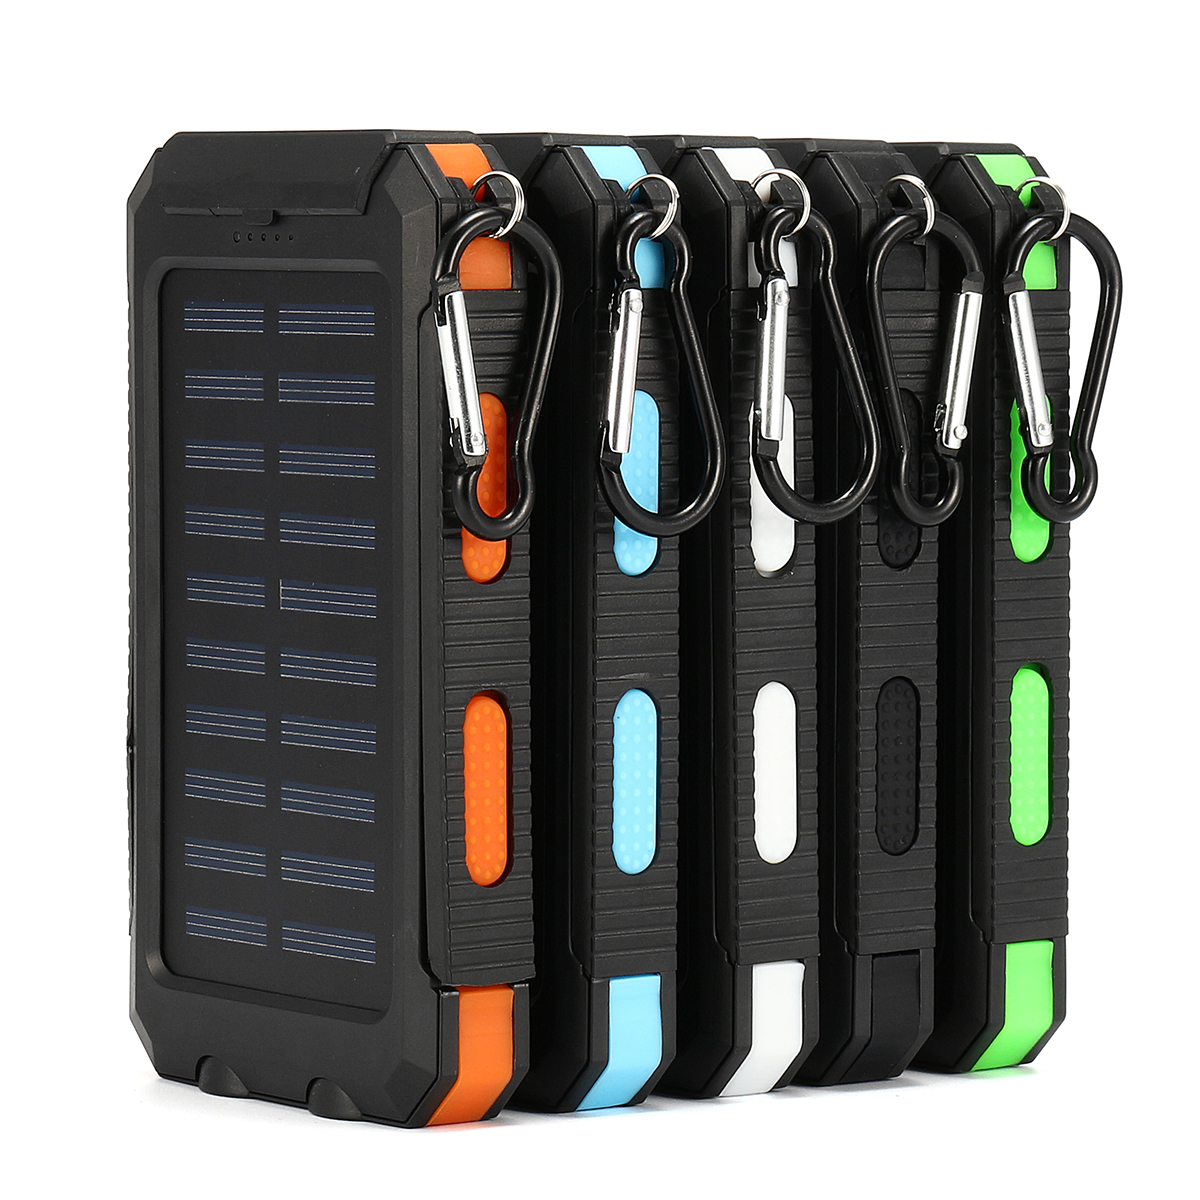 20000mAh Dual USB DIY Solar Power Bank Case Kit Assembling Kit with LED Light 14cmx7.7cmx2.2cm